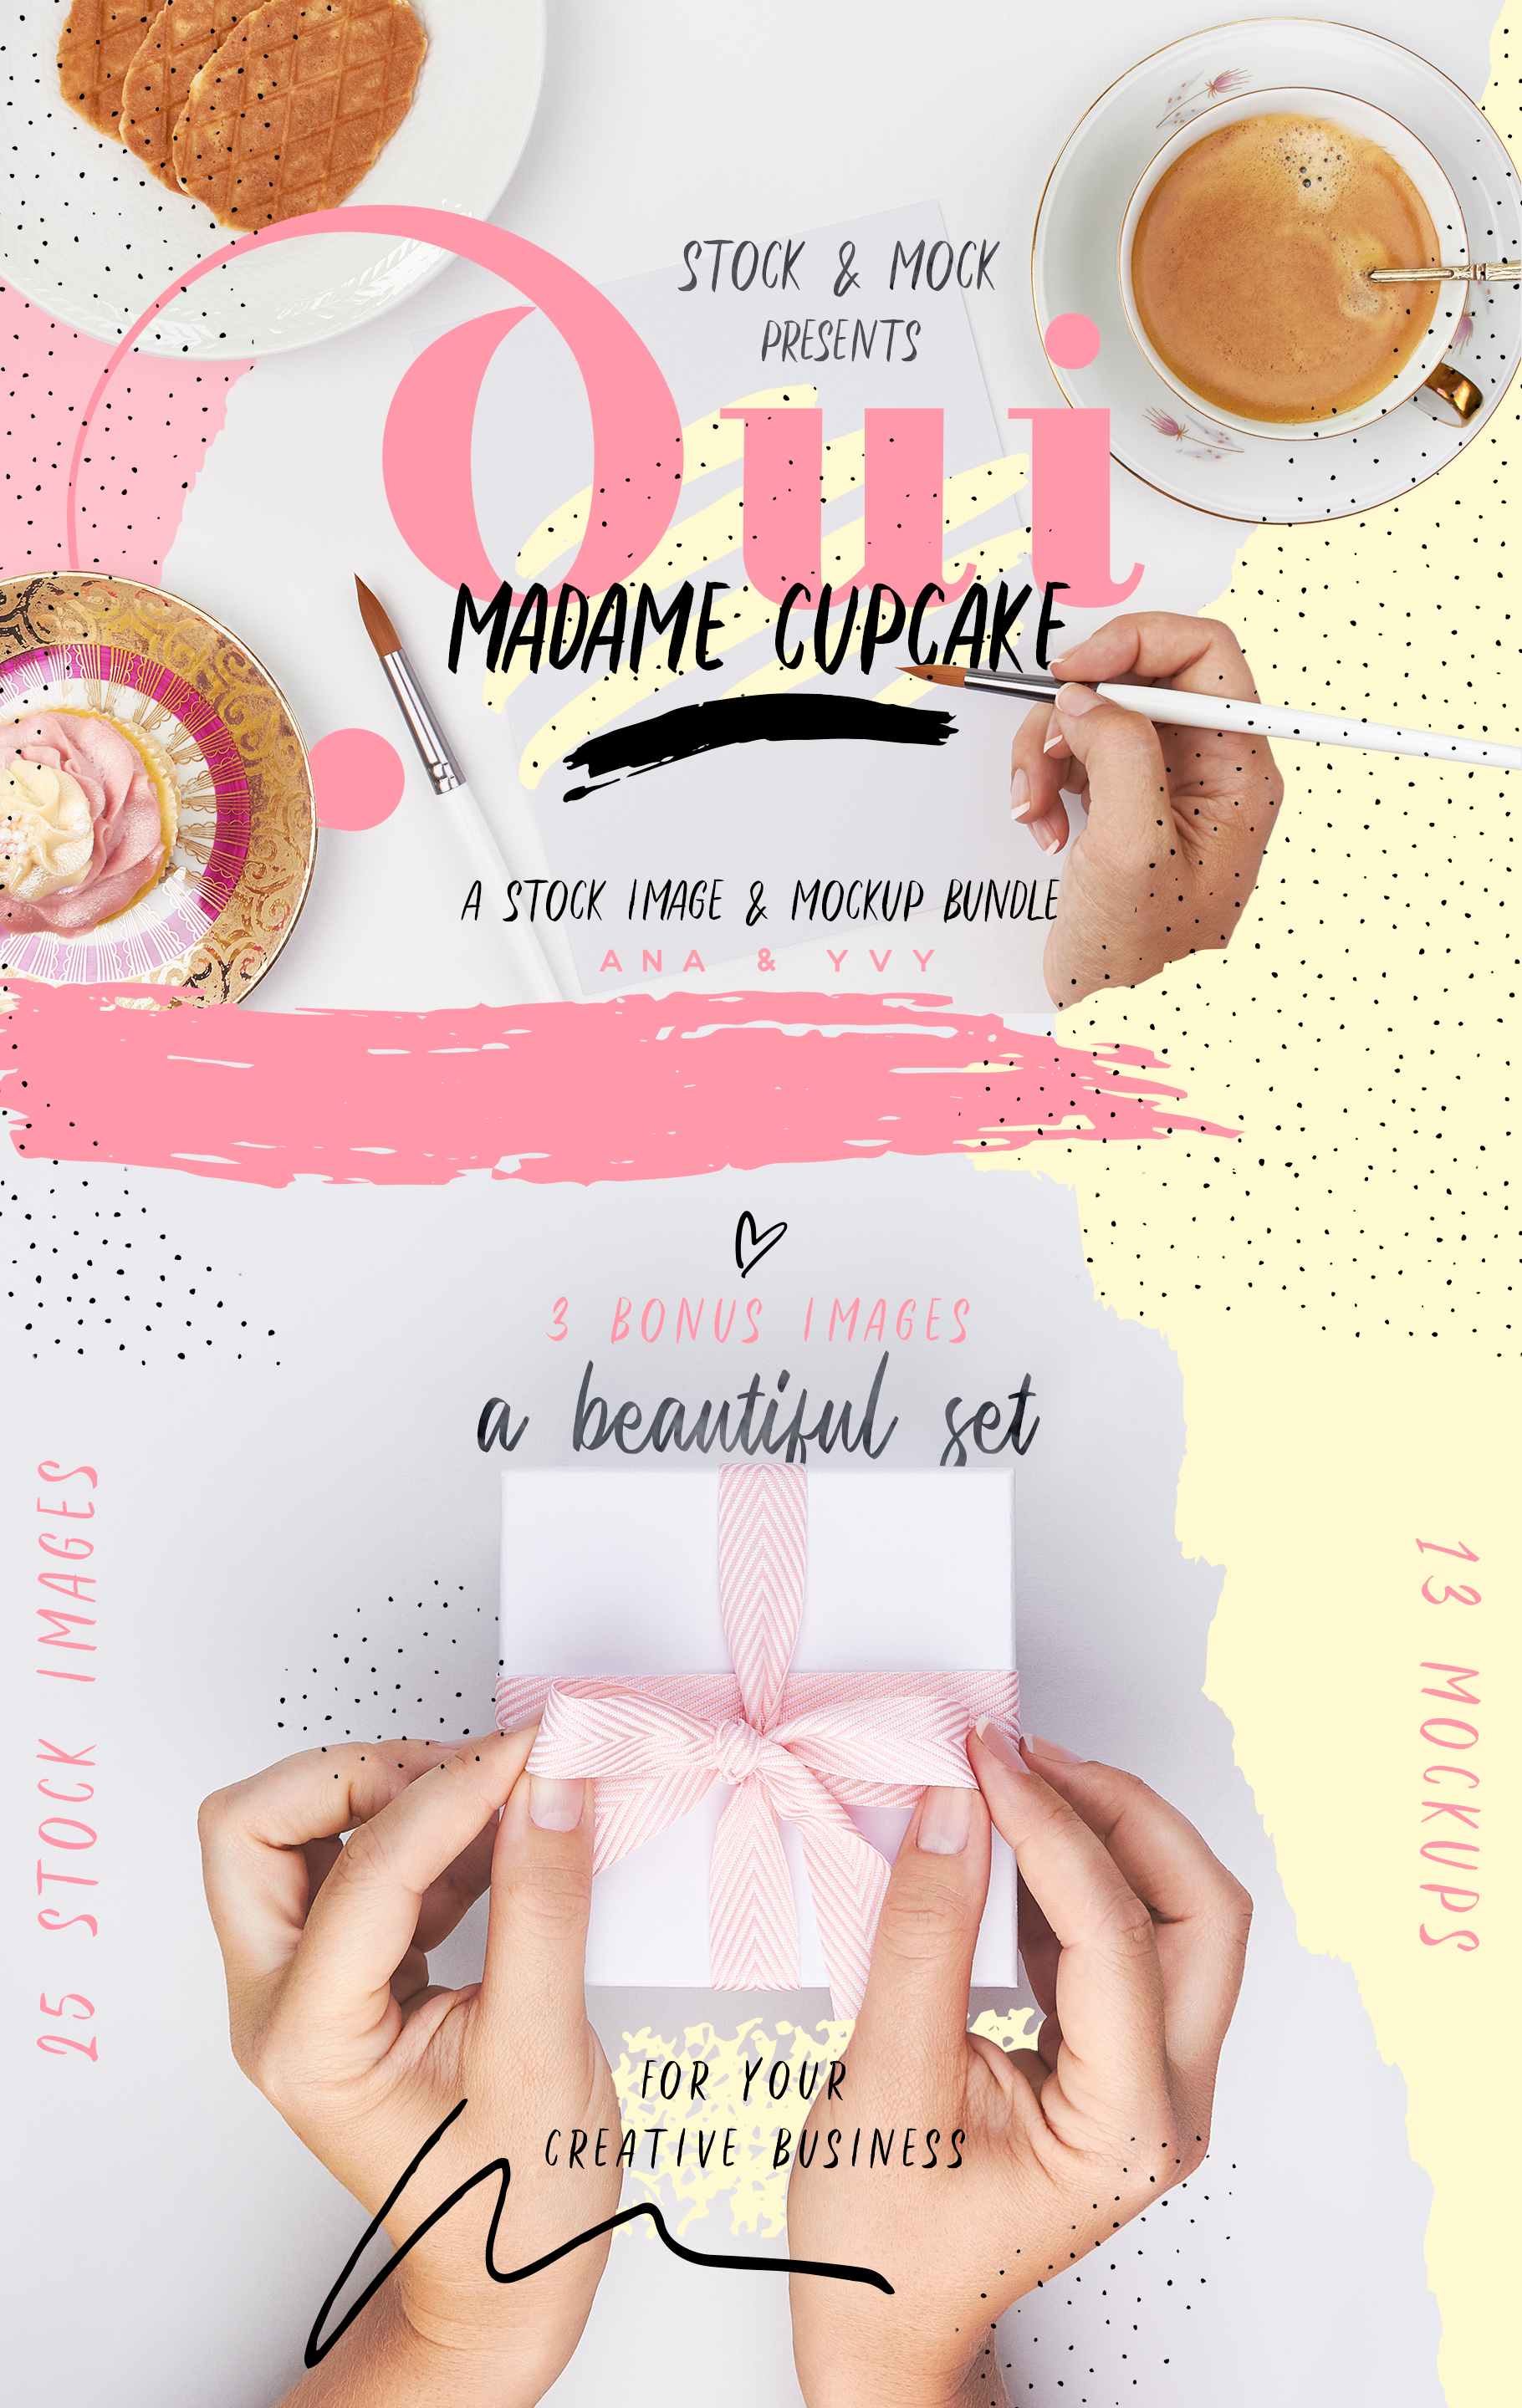 Oui cupcake stock photography romantic coffee cake tea time girly